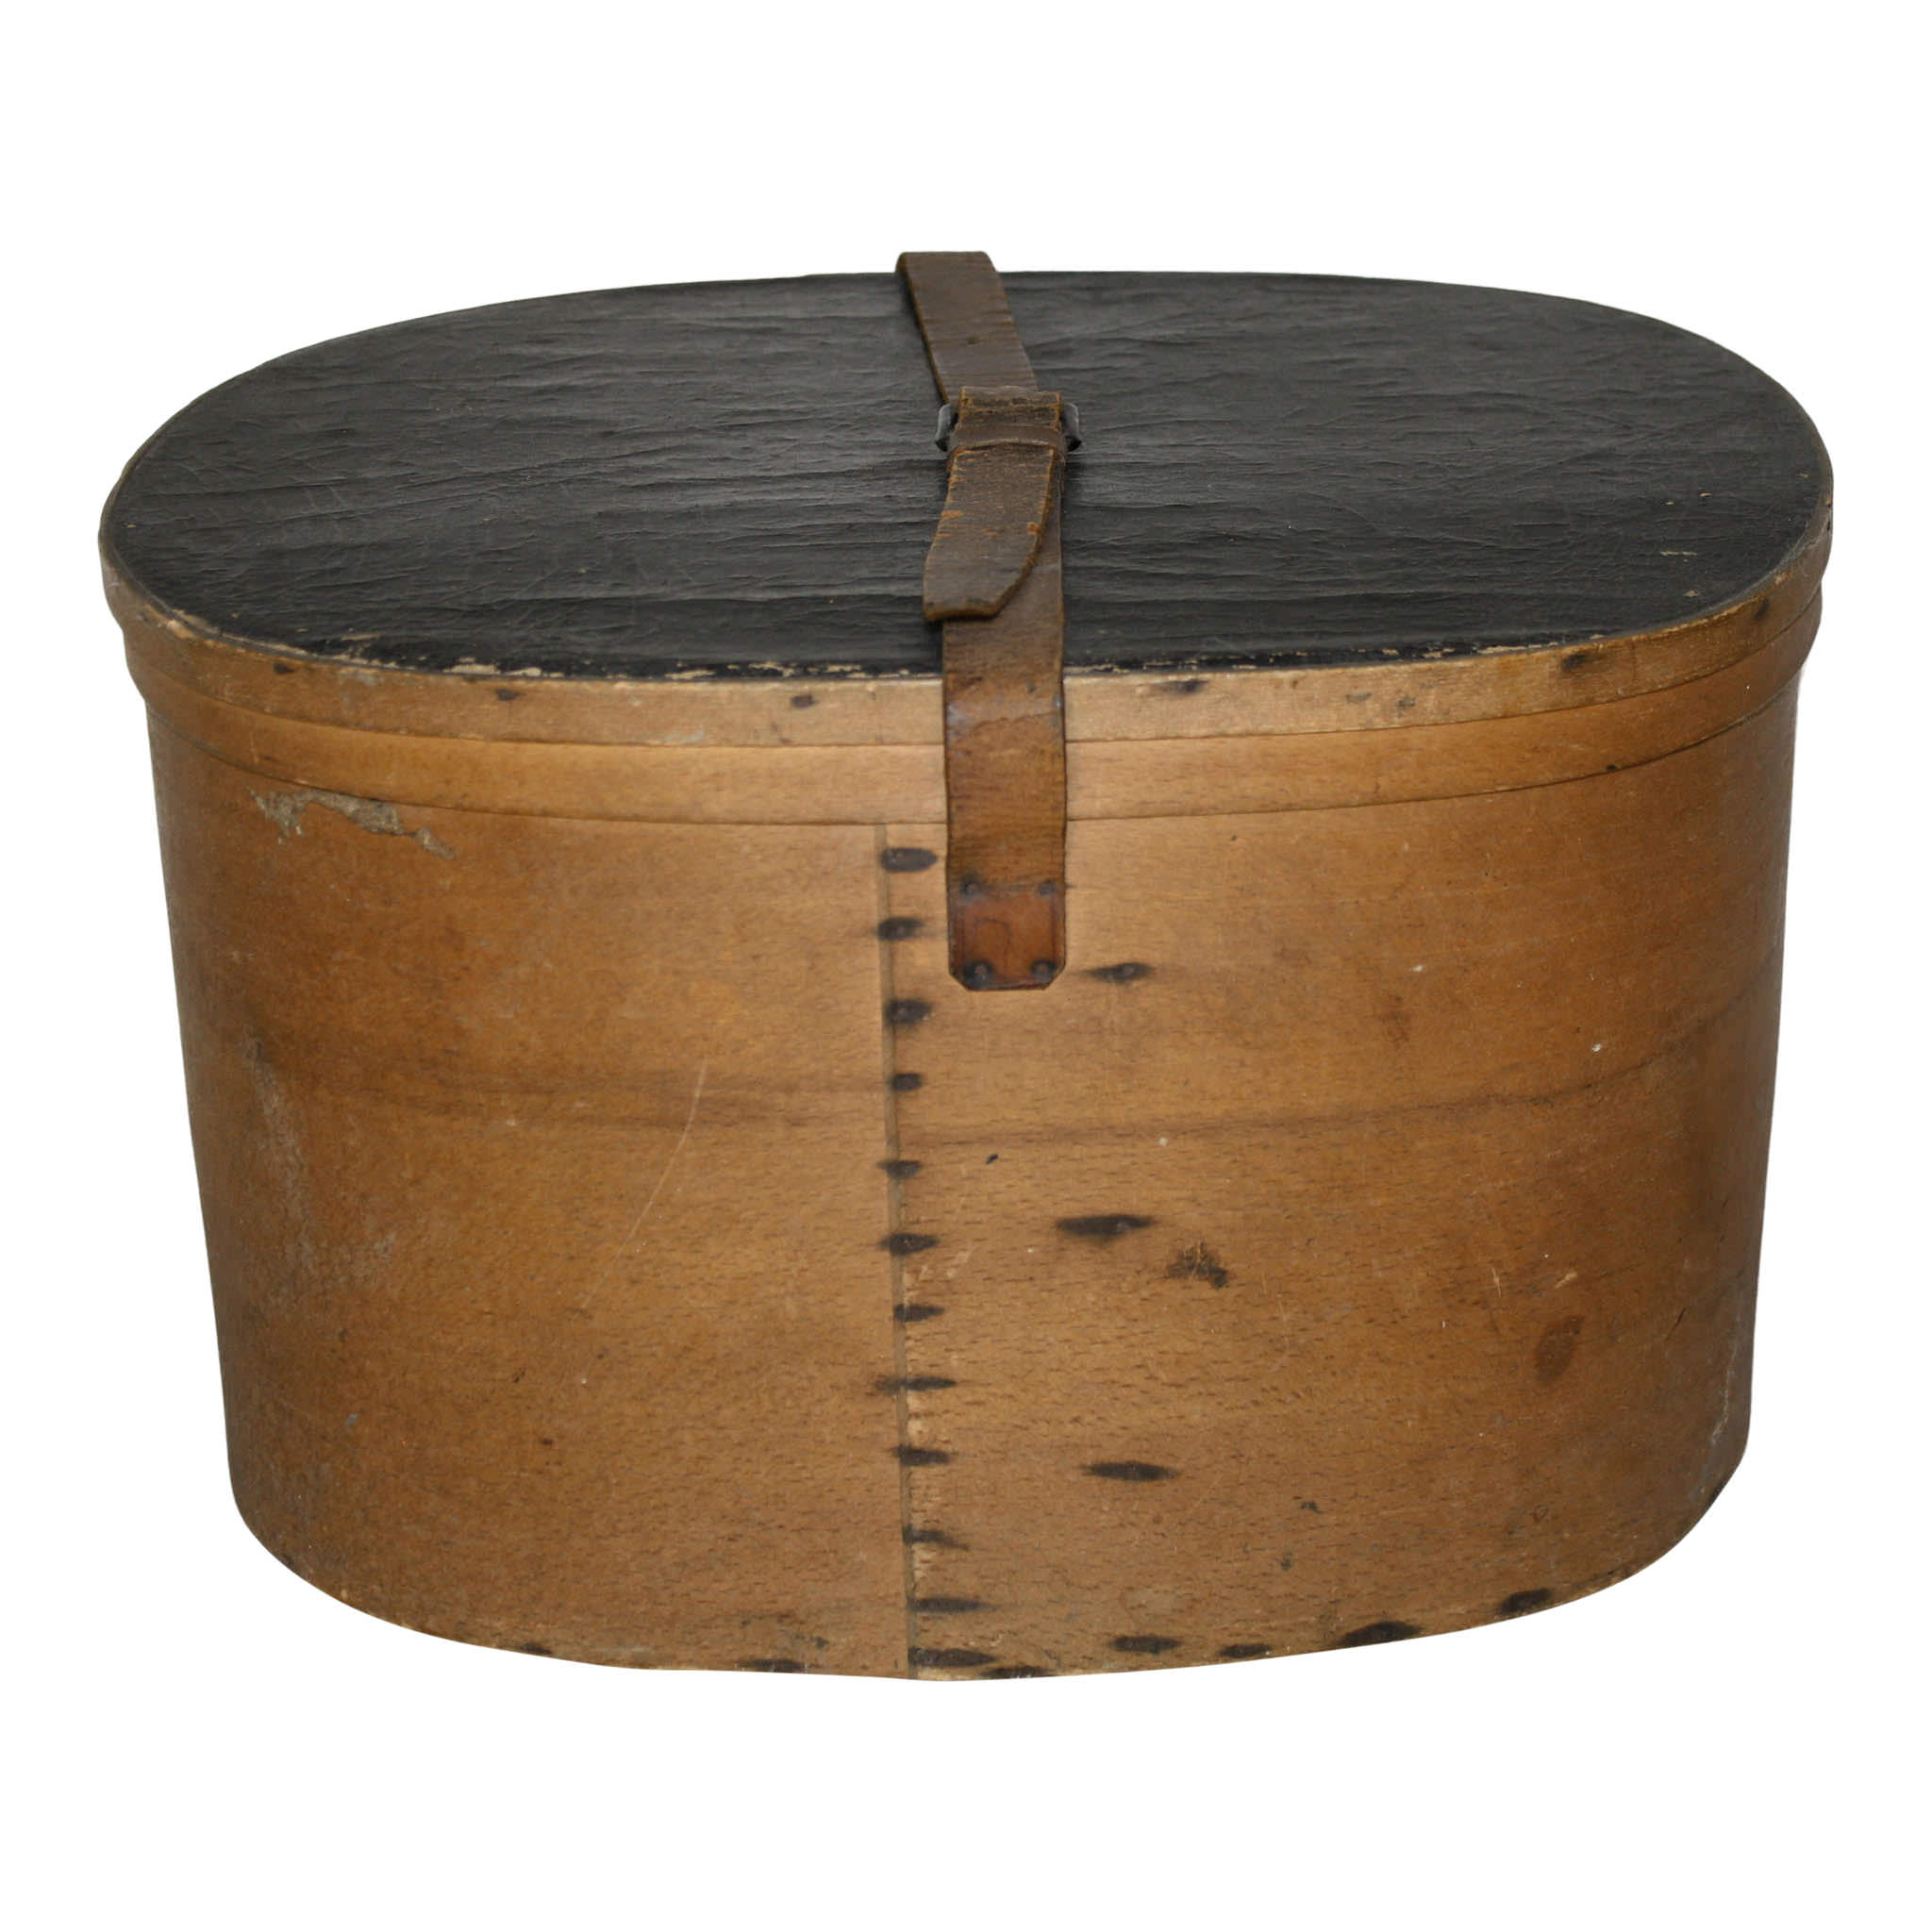 Oval Bentwood Hat Box with Leather Strap and Lid